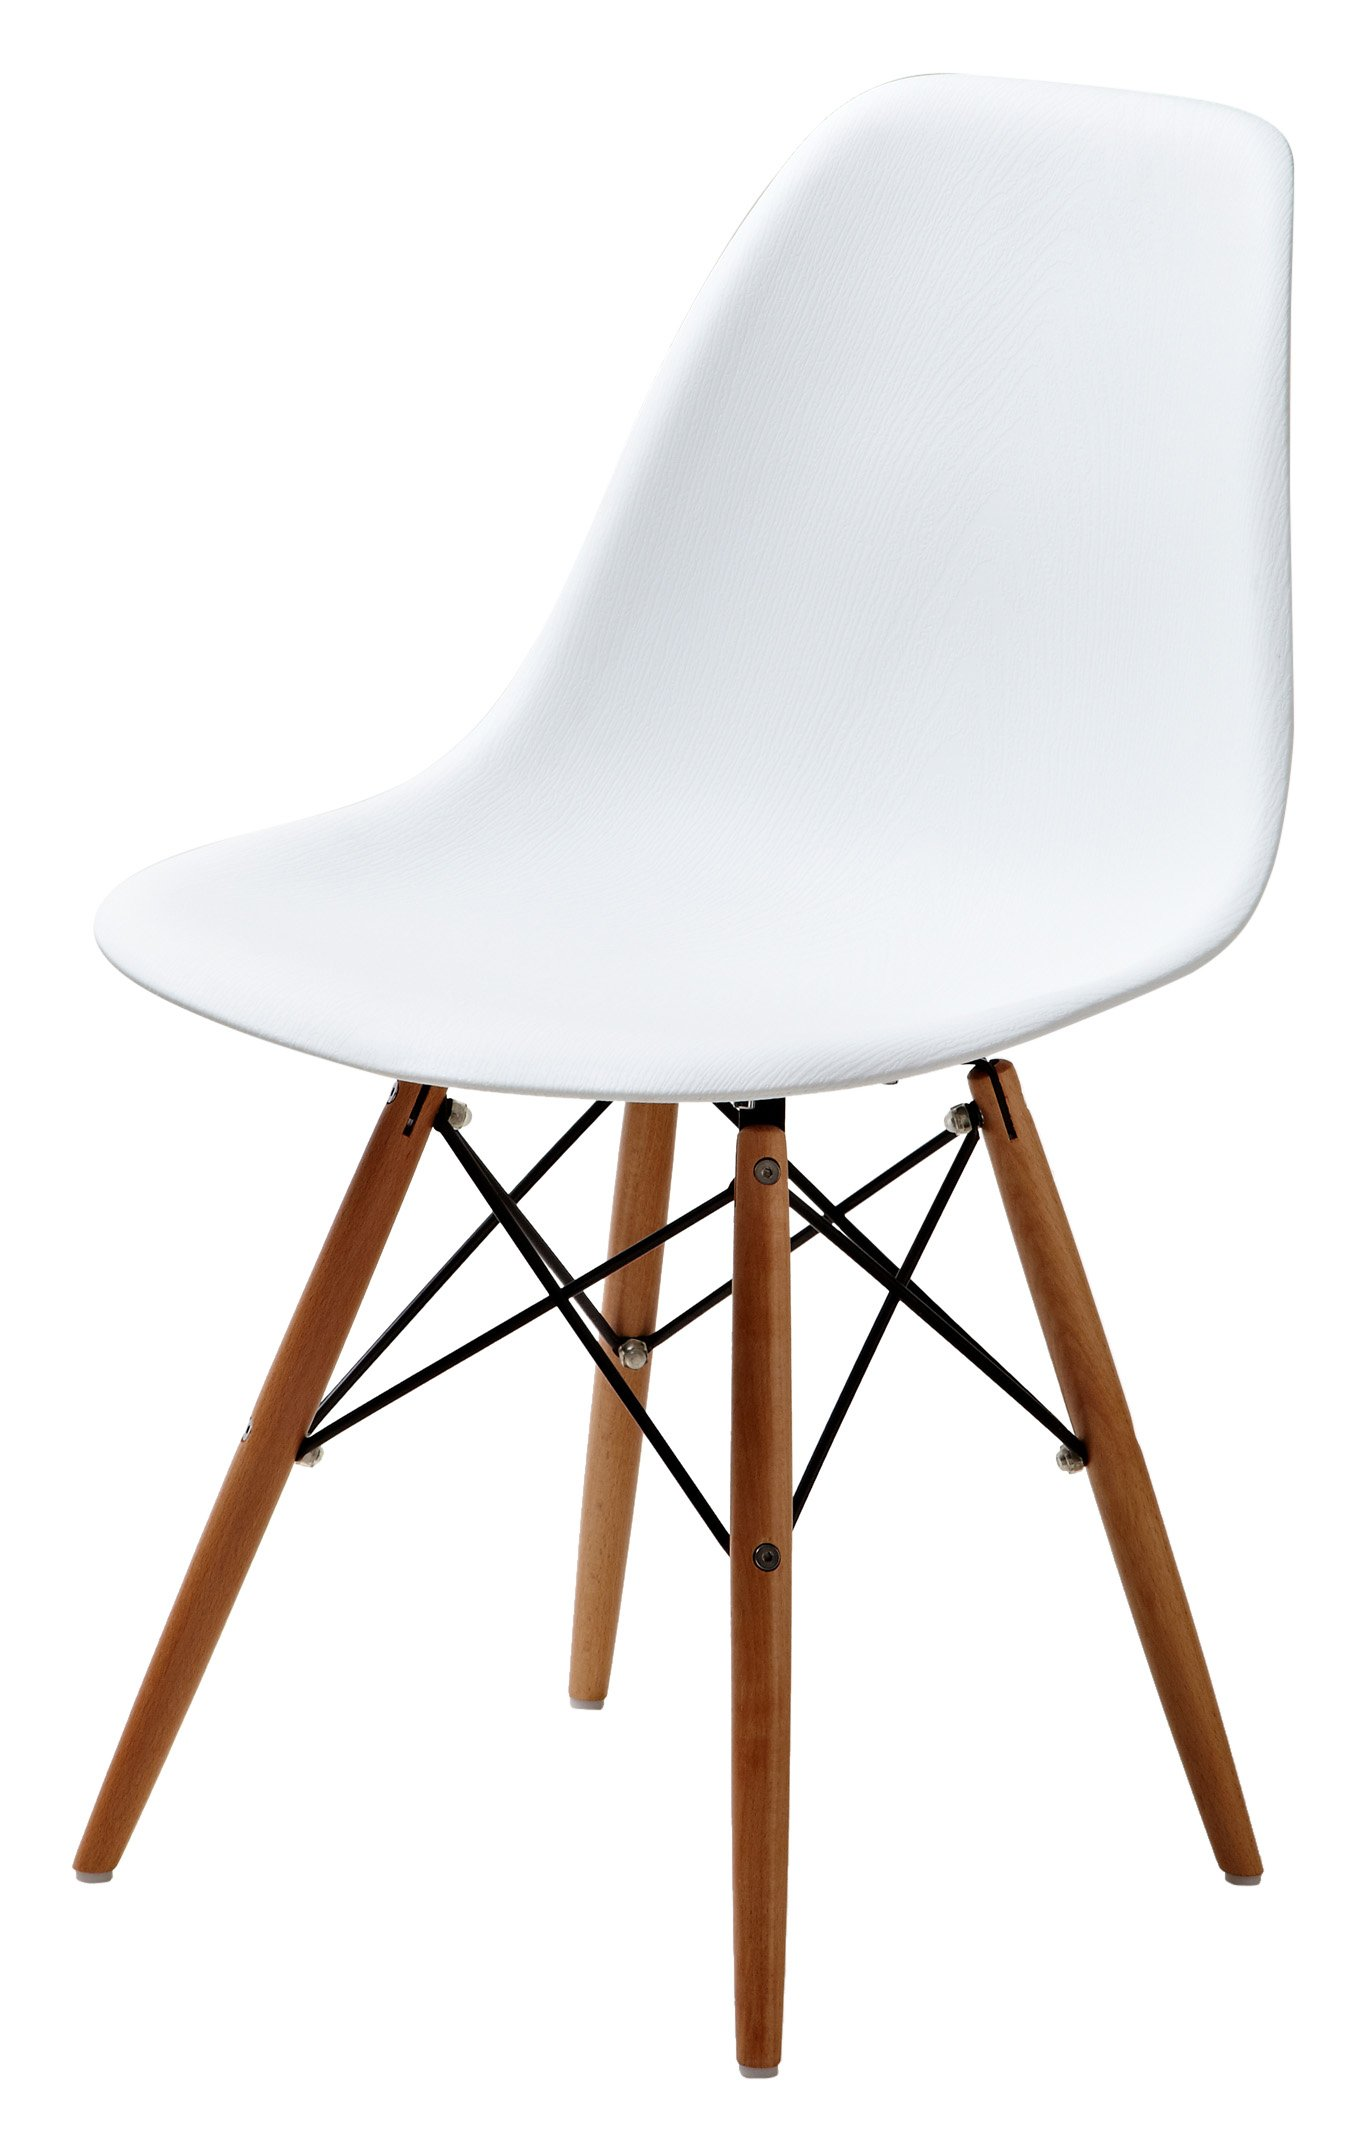 Gold Sparrow Lucas Wood Grain Accent Chairs, Set of 2, White